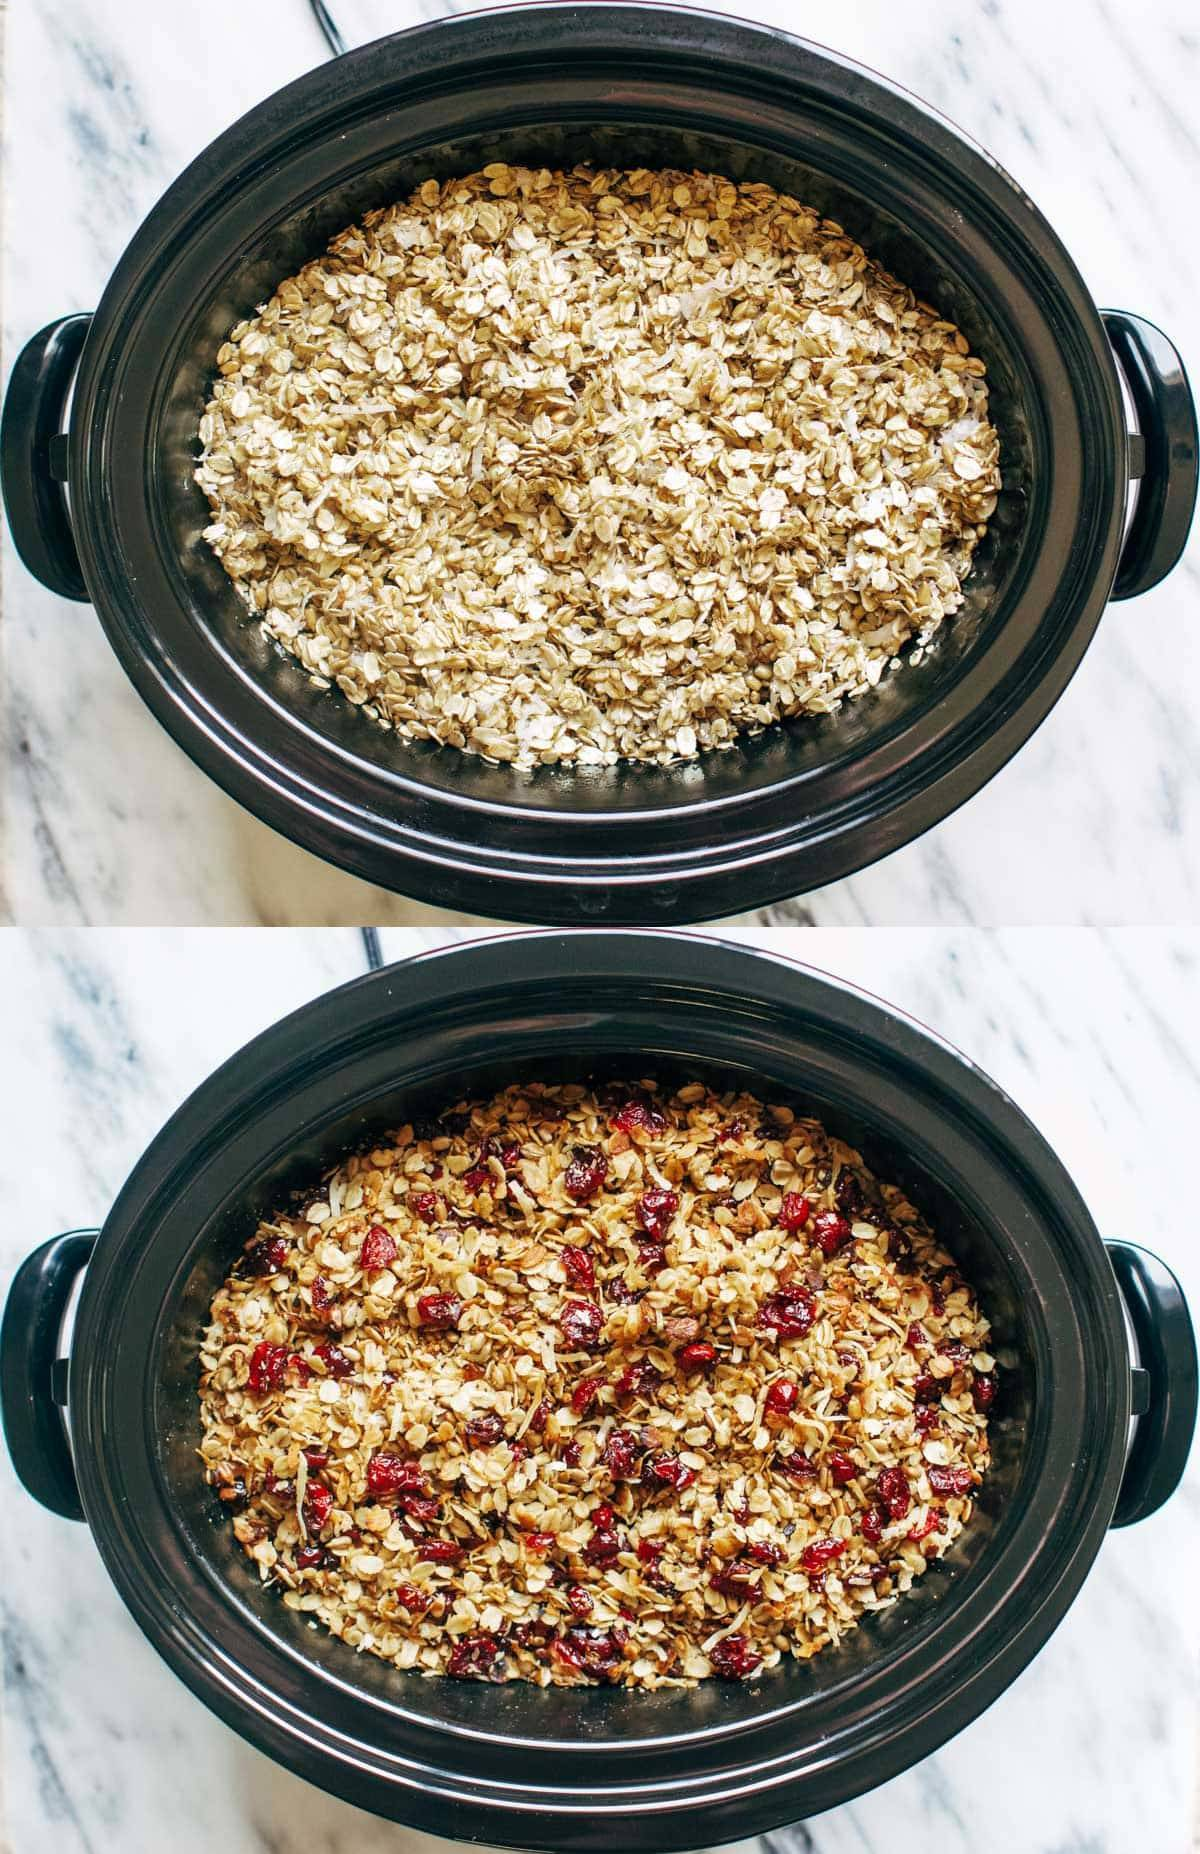 Granola in a slow cooker in two images.